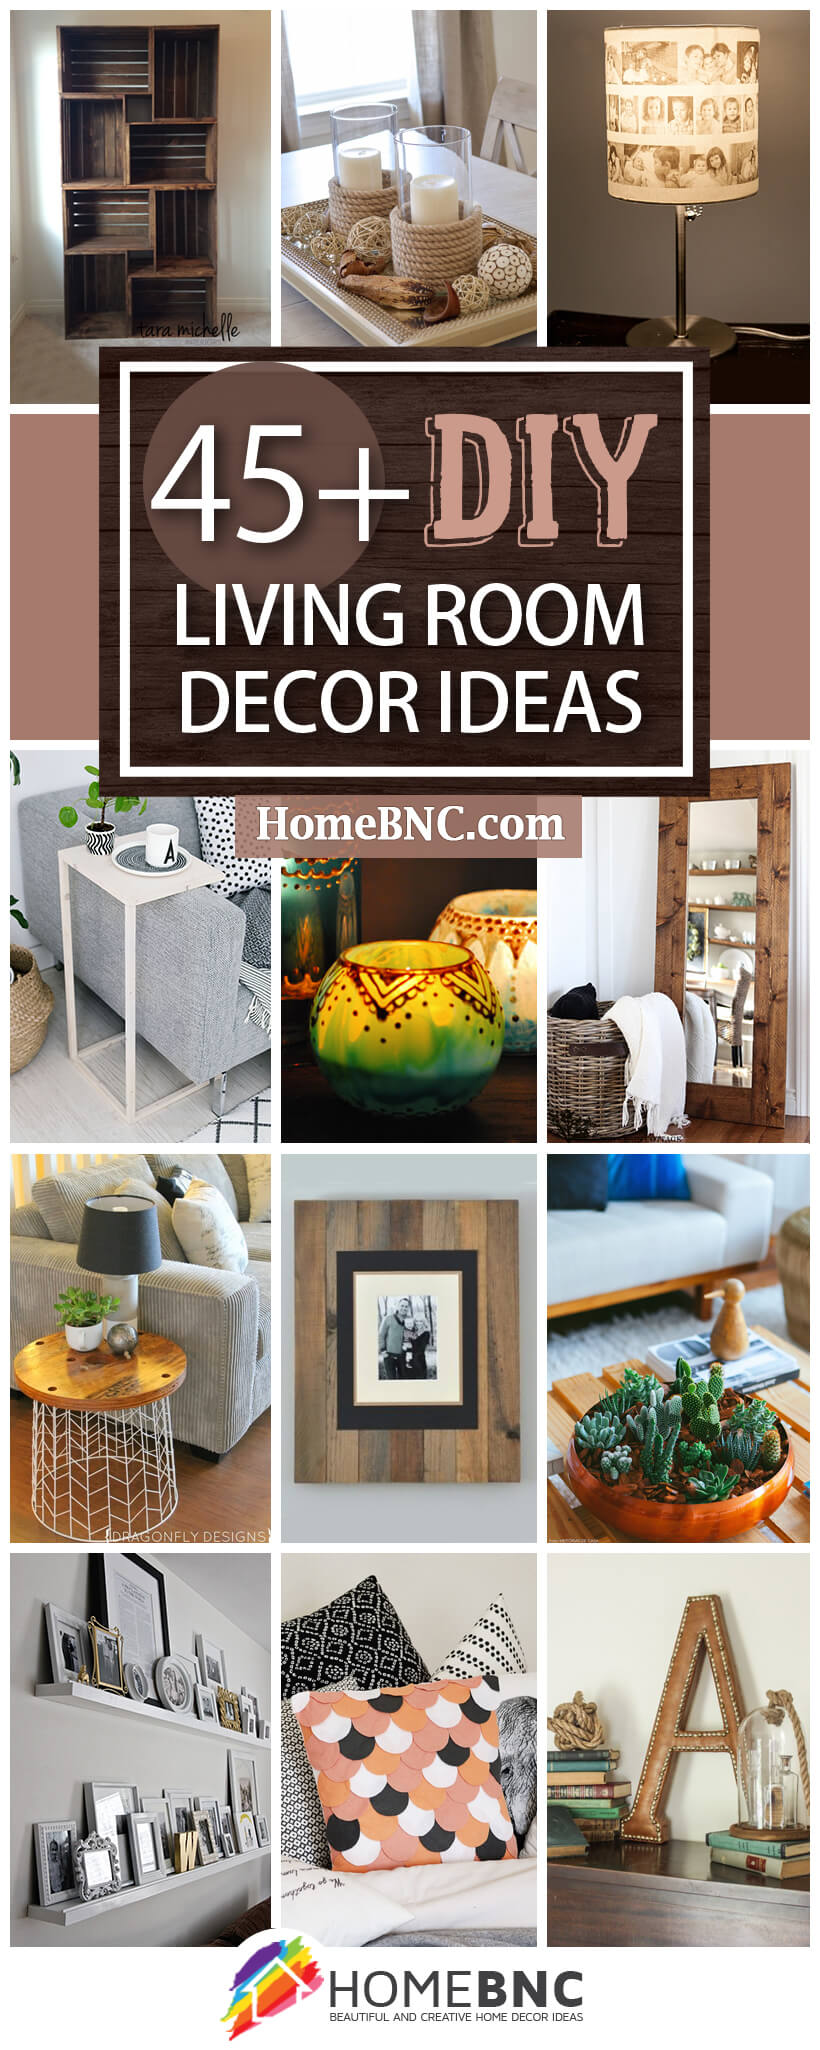 45 Best Diy Living Room Decorating Ideas And Designs For 2021